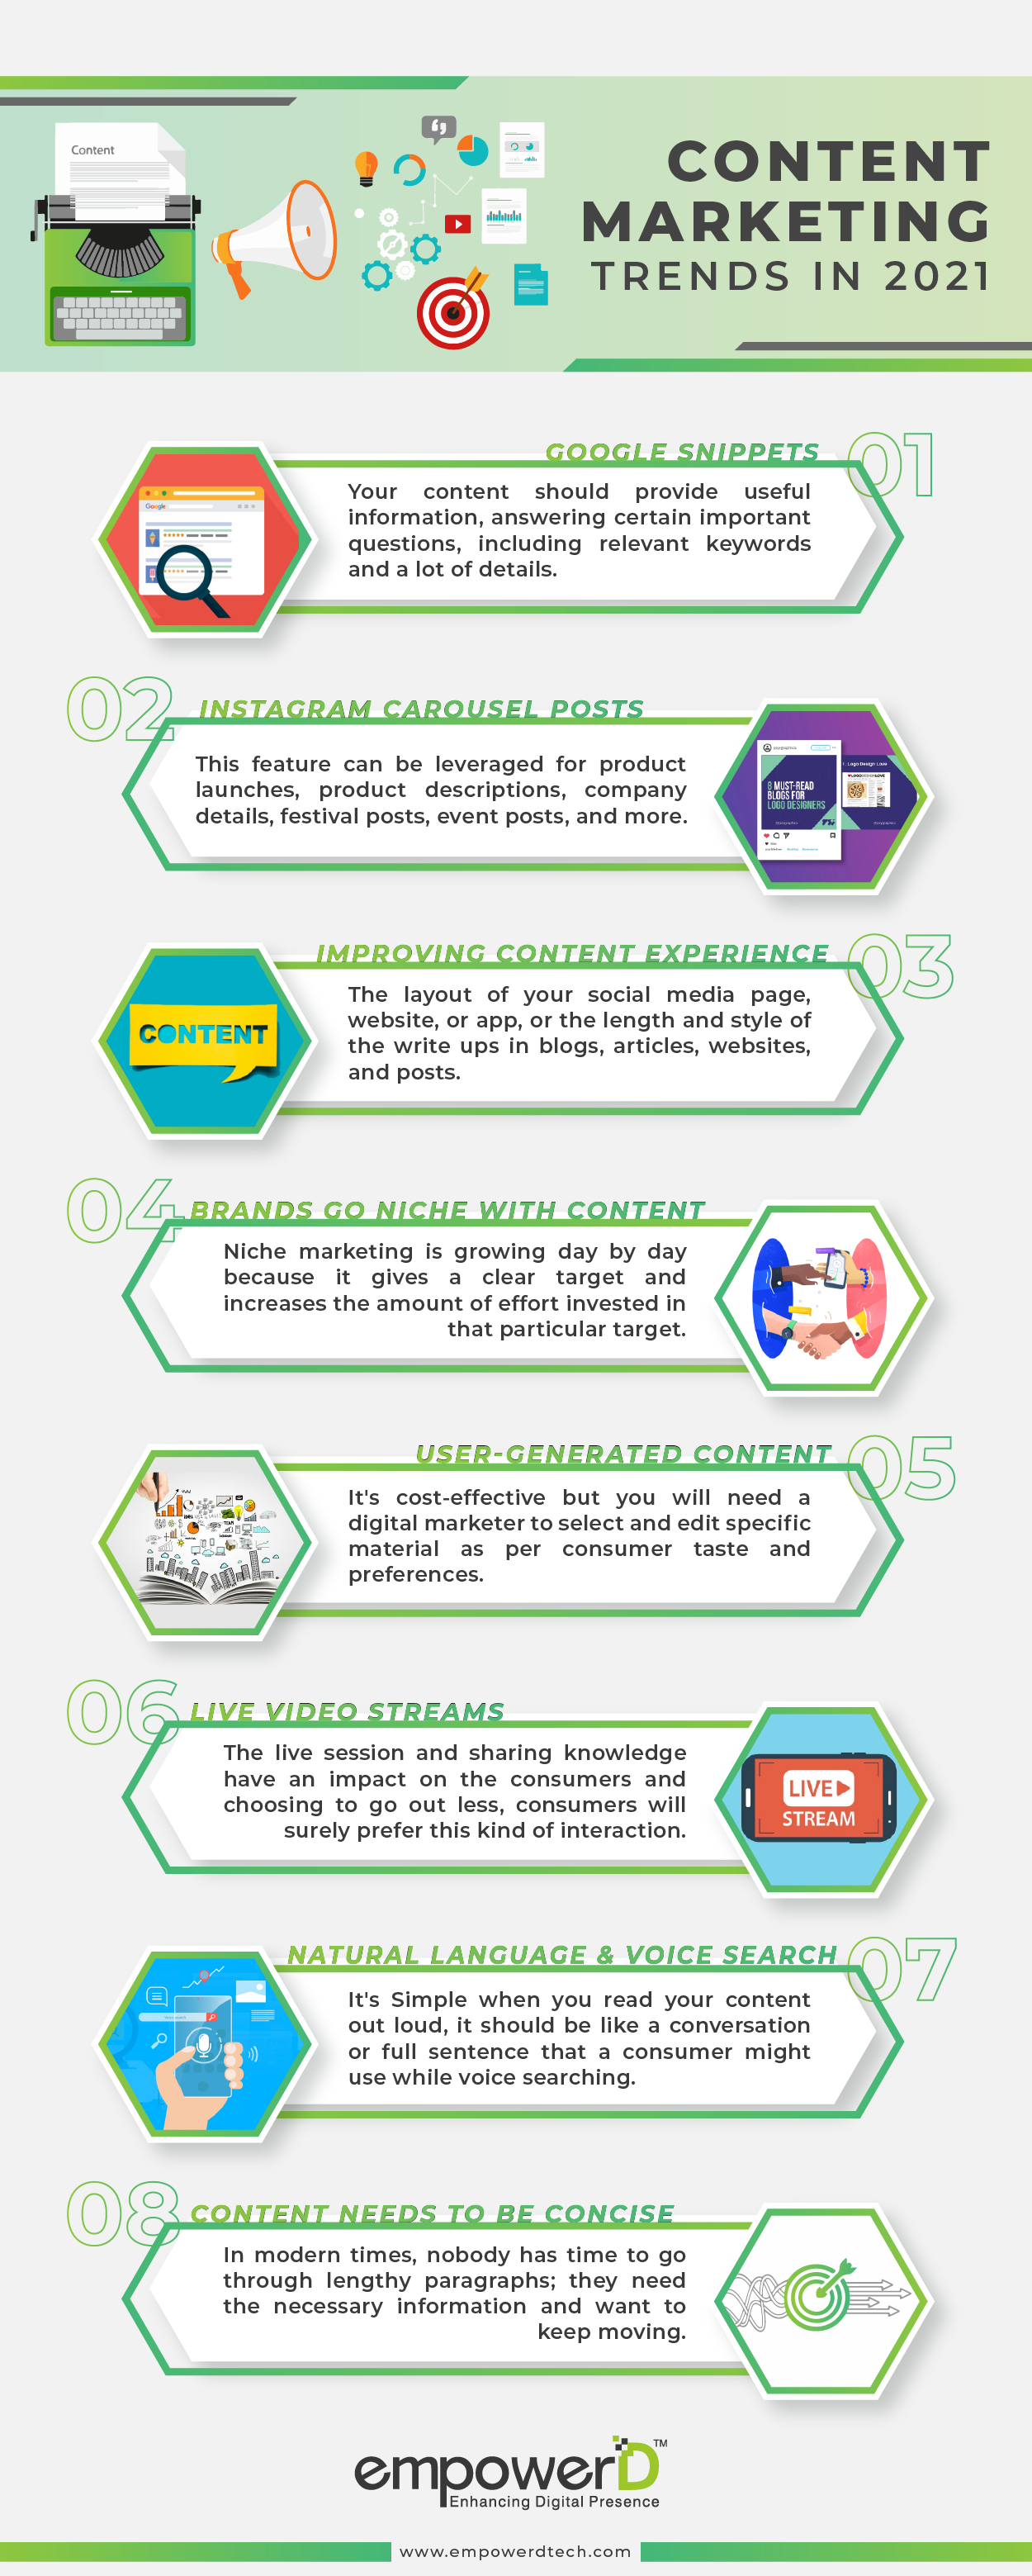 What will be content marketing trends in 2021